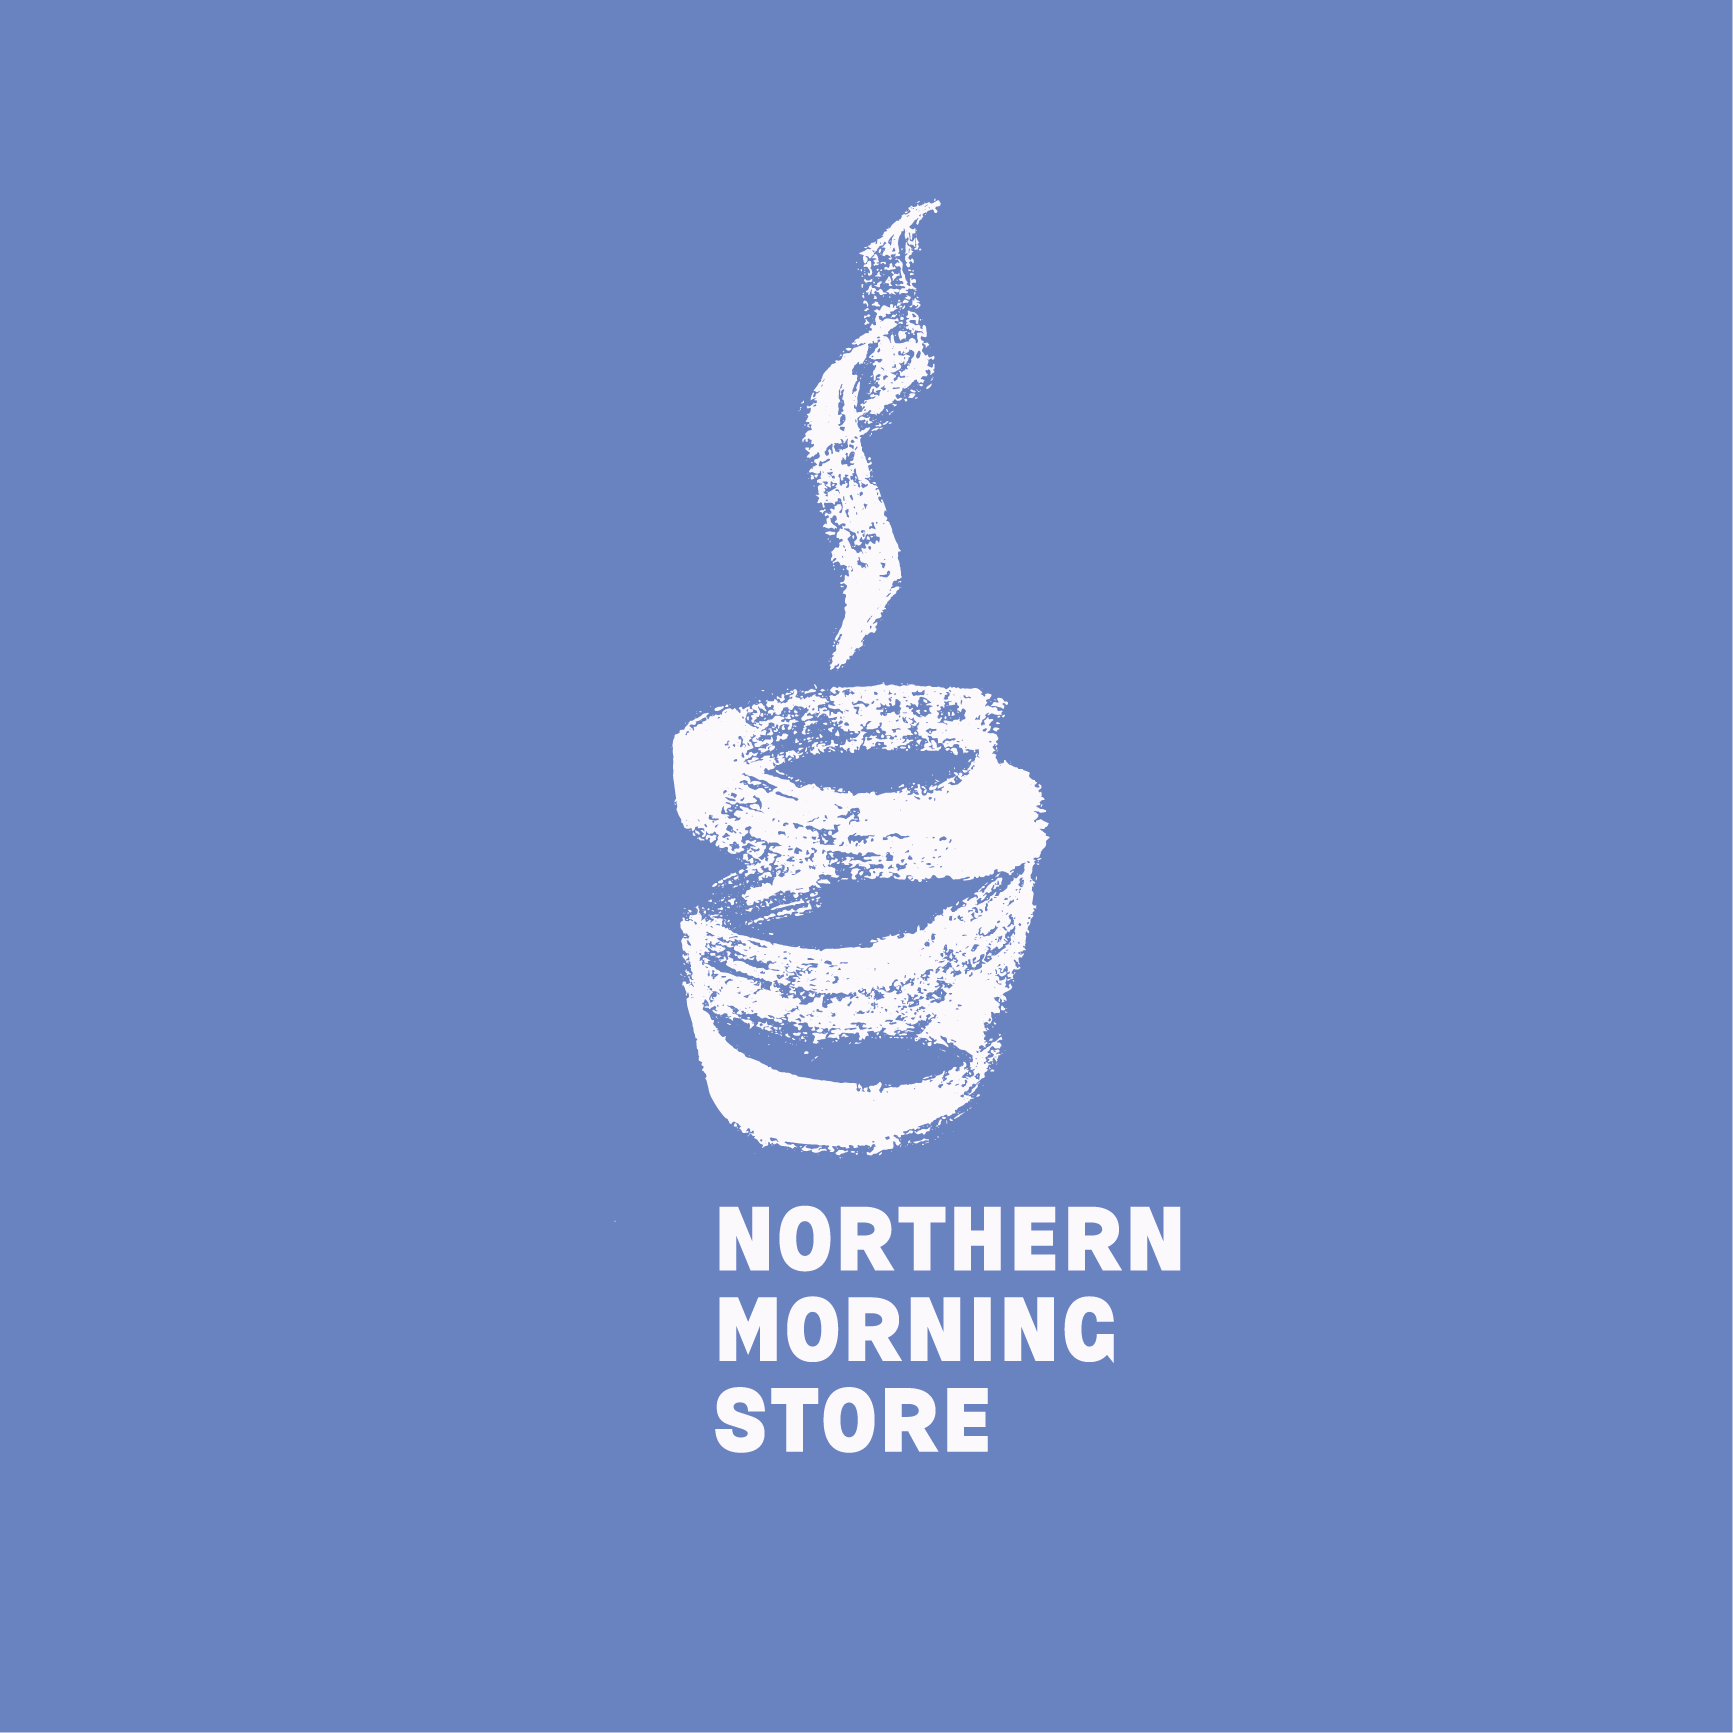 Northern Morning Store